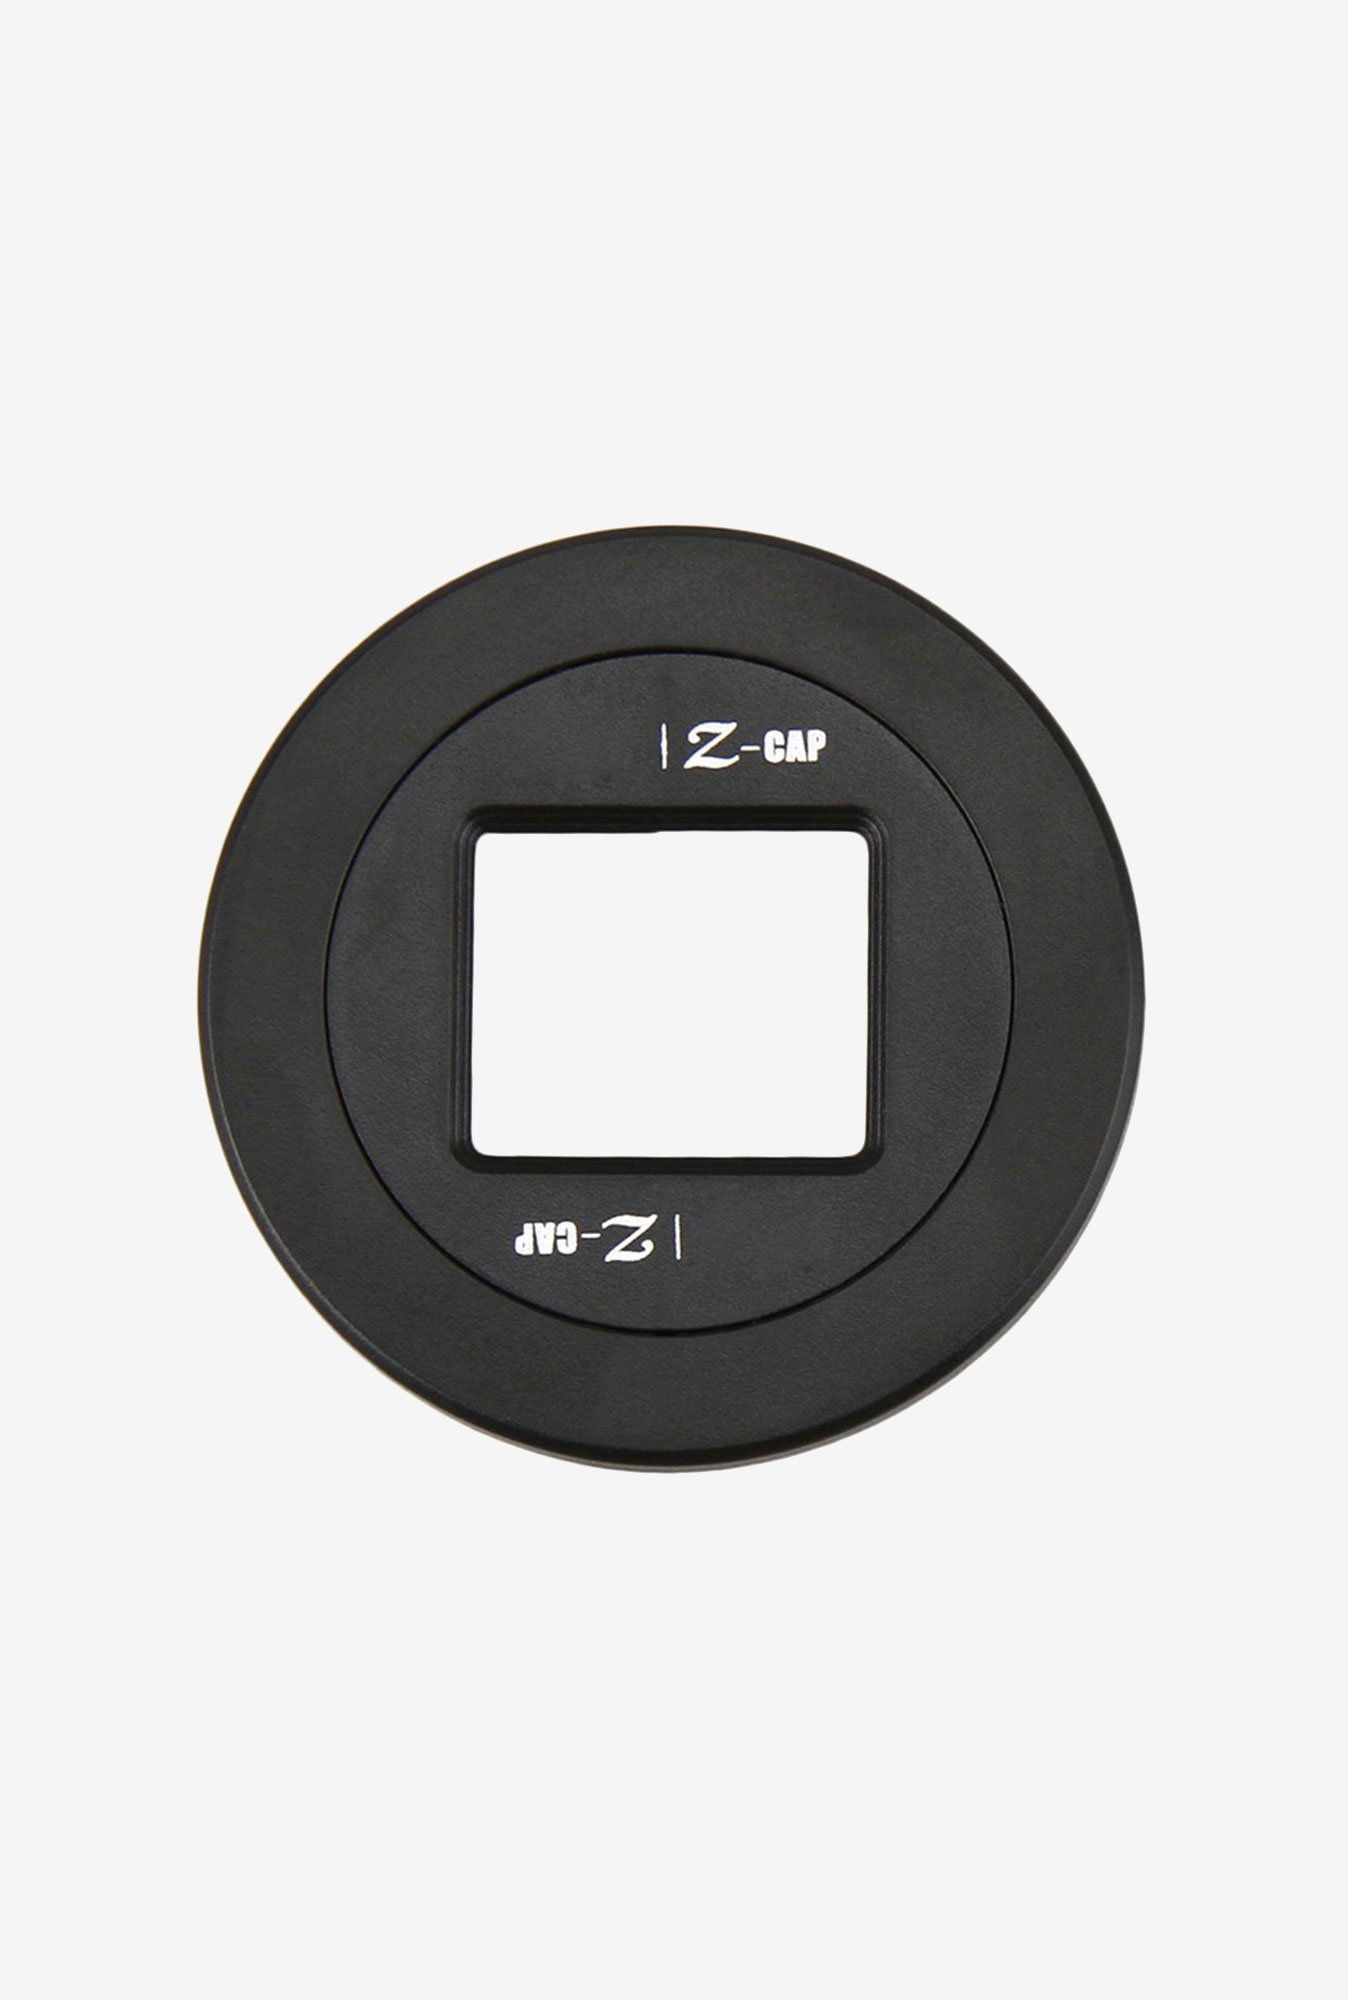 Neewer Self-Retaining Auto Open Close Front Lens Cap Cover